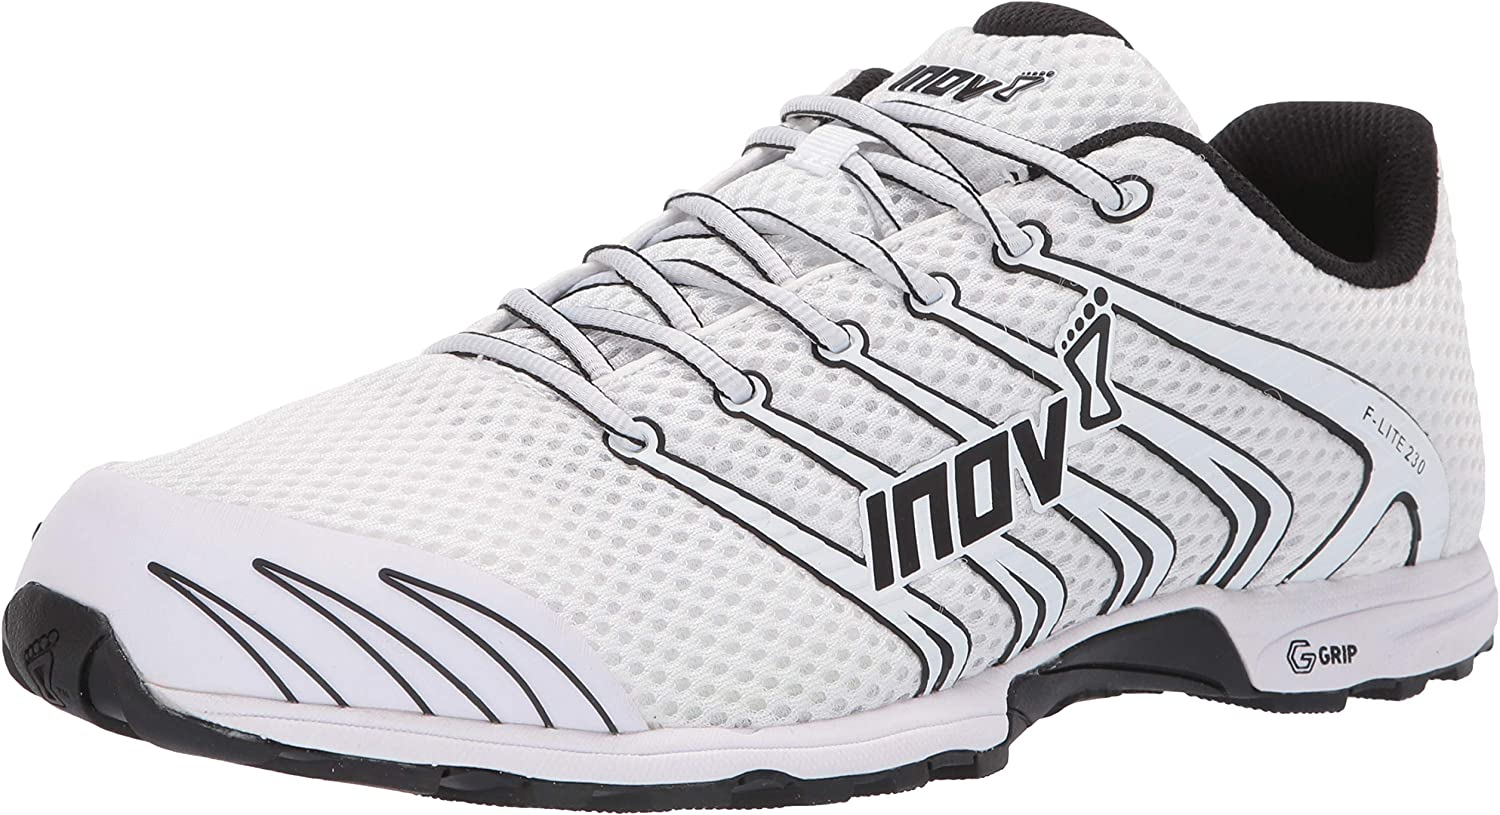 INOV-8 F-Lite 230 – Minimalist Cross Training Shoes – Classic Model – Graphene Grip – White Black 11.5 M US